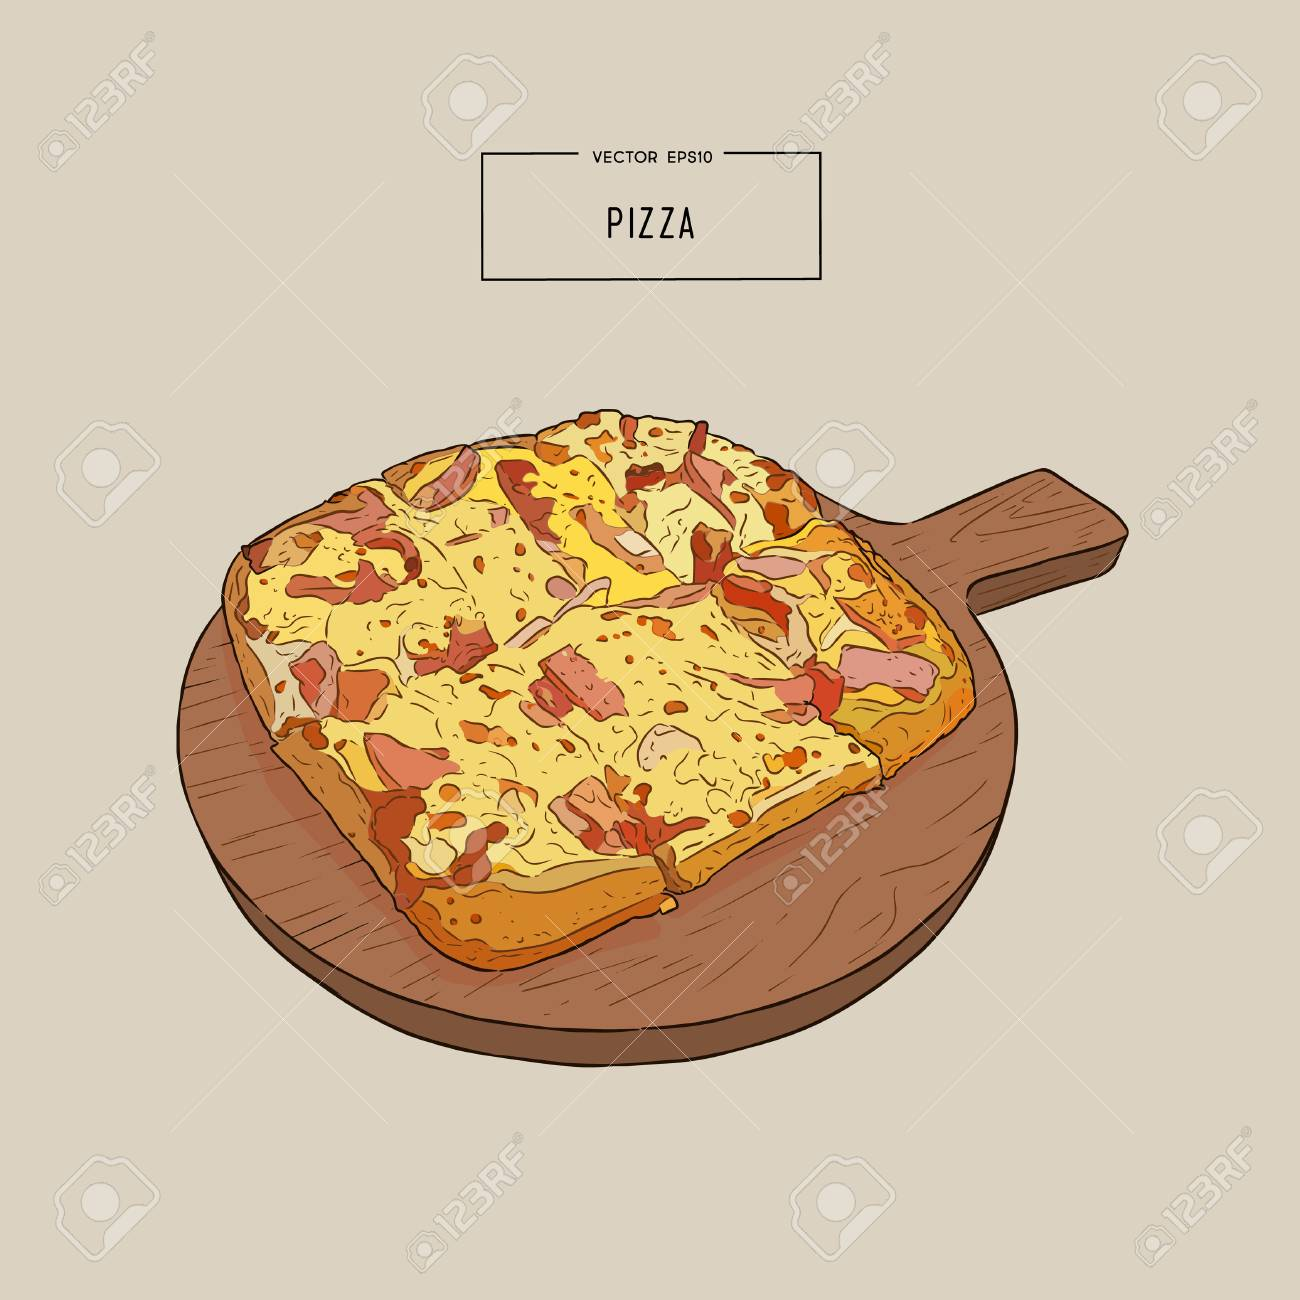 Pizza on the wooden board hand draw sketch design illustration. - 88613125